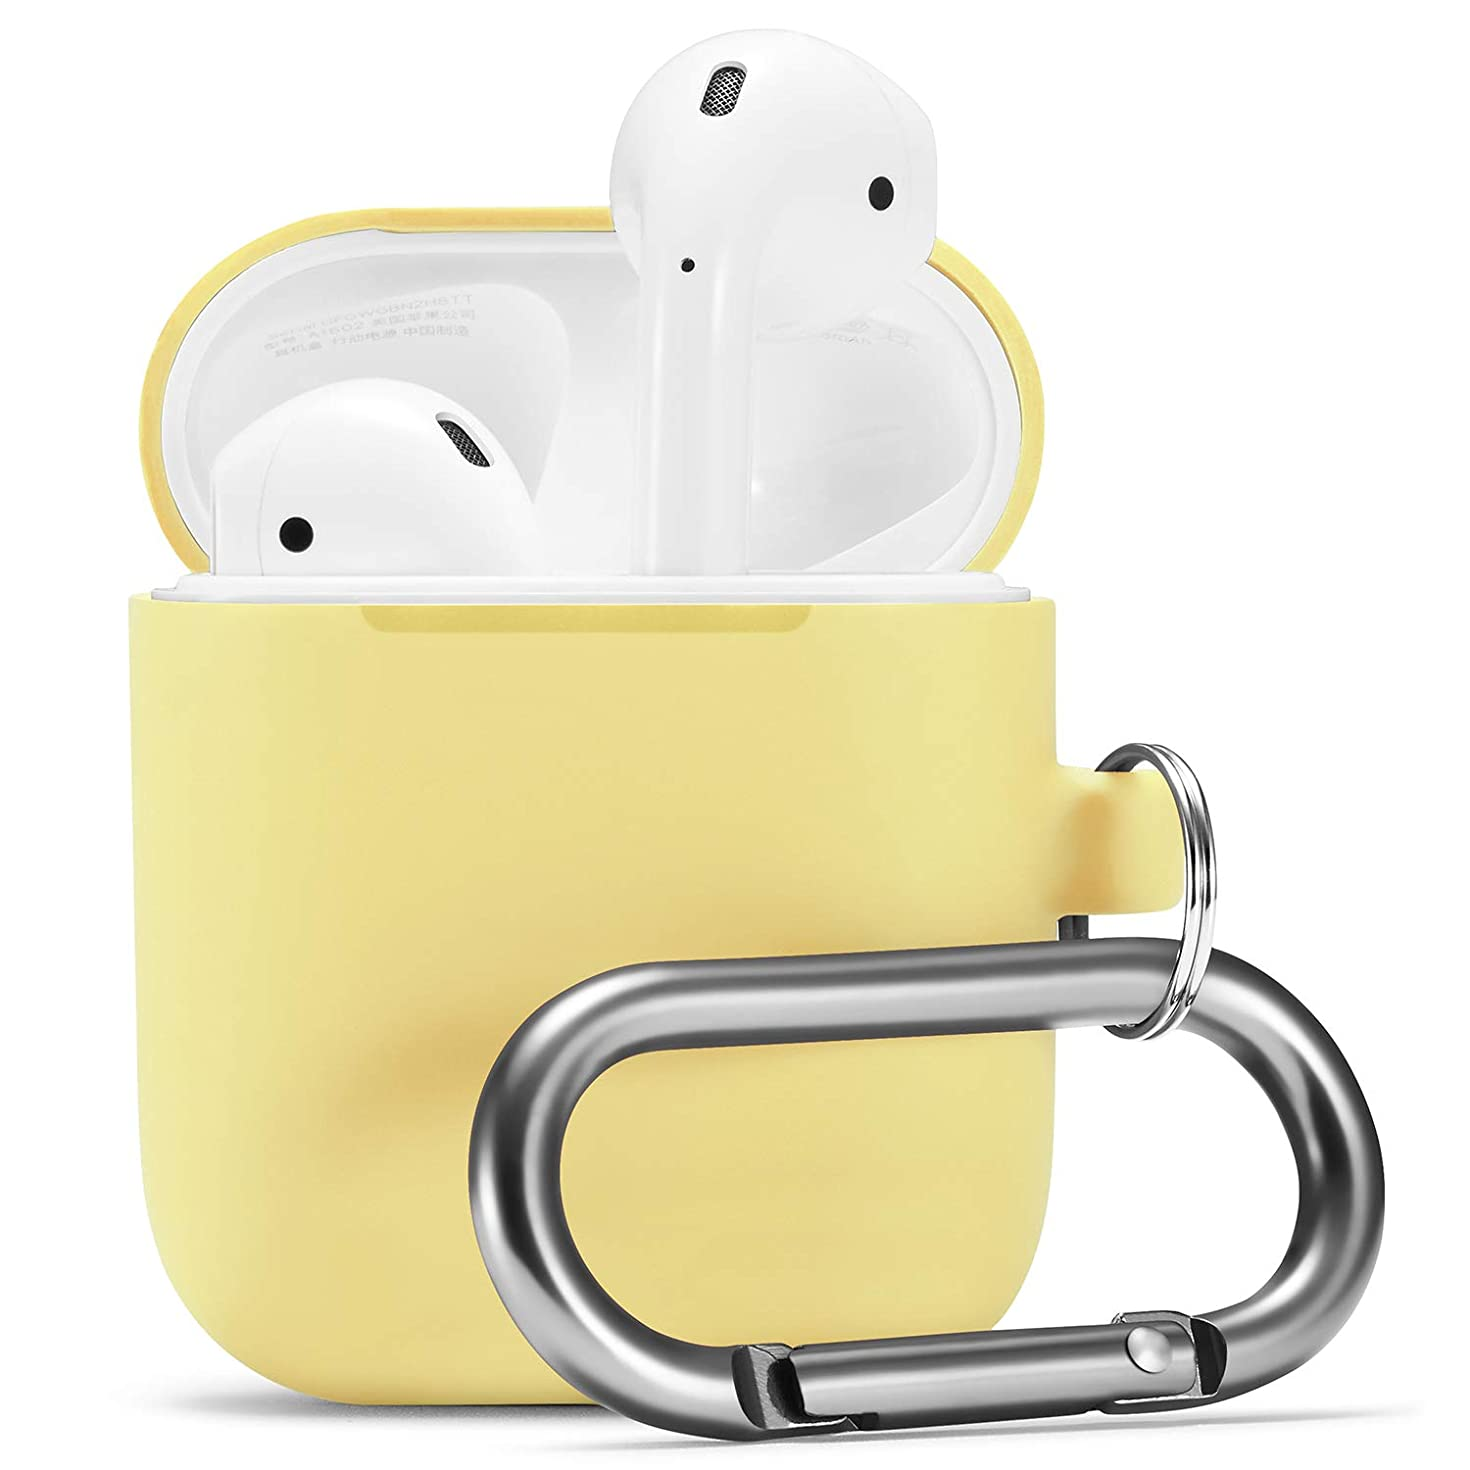 Airpods Case, Airpod Silicone Skin Cases Cover by Camyse, Full Protective Durable Shockproof Drop Proof with Keychain Compatible with Apple Airpods Charging Case,Airpods?Accesssories (Yellow)